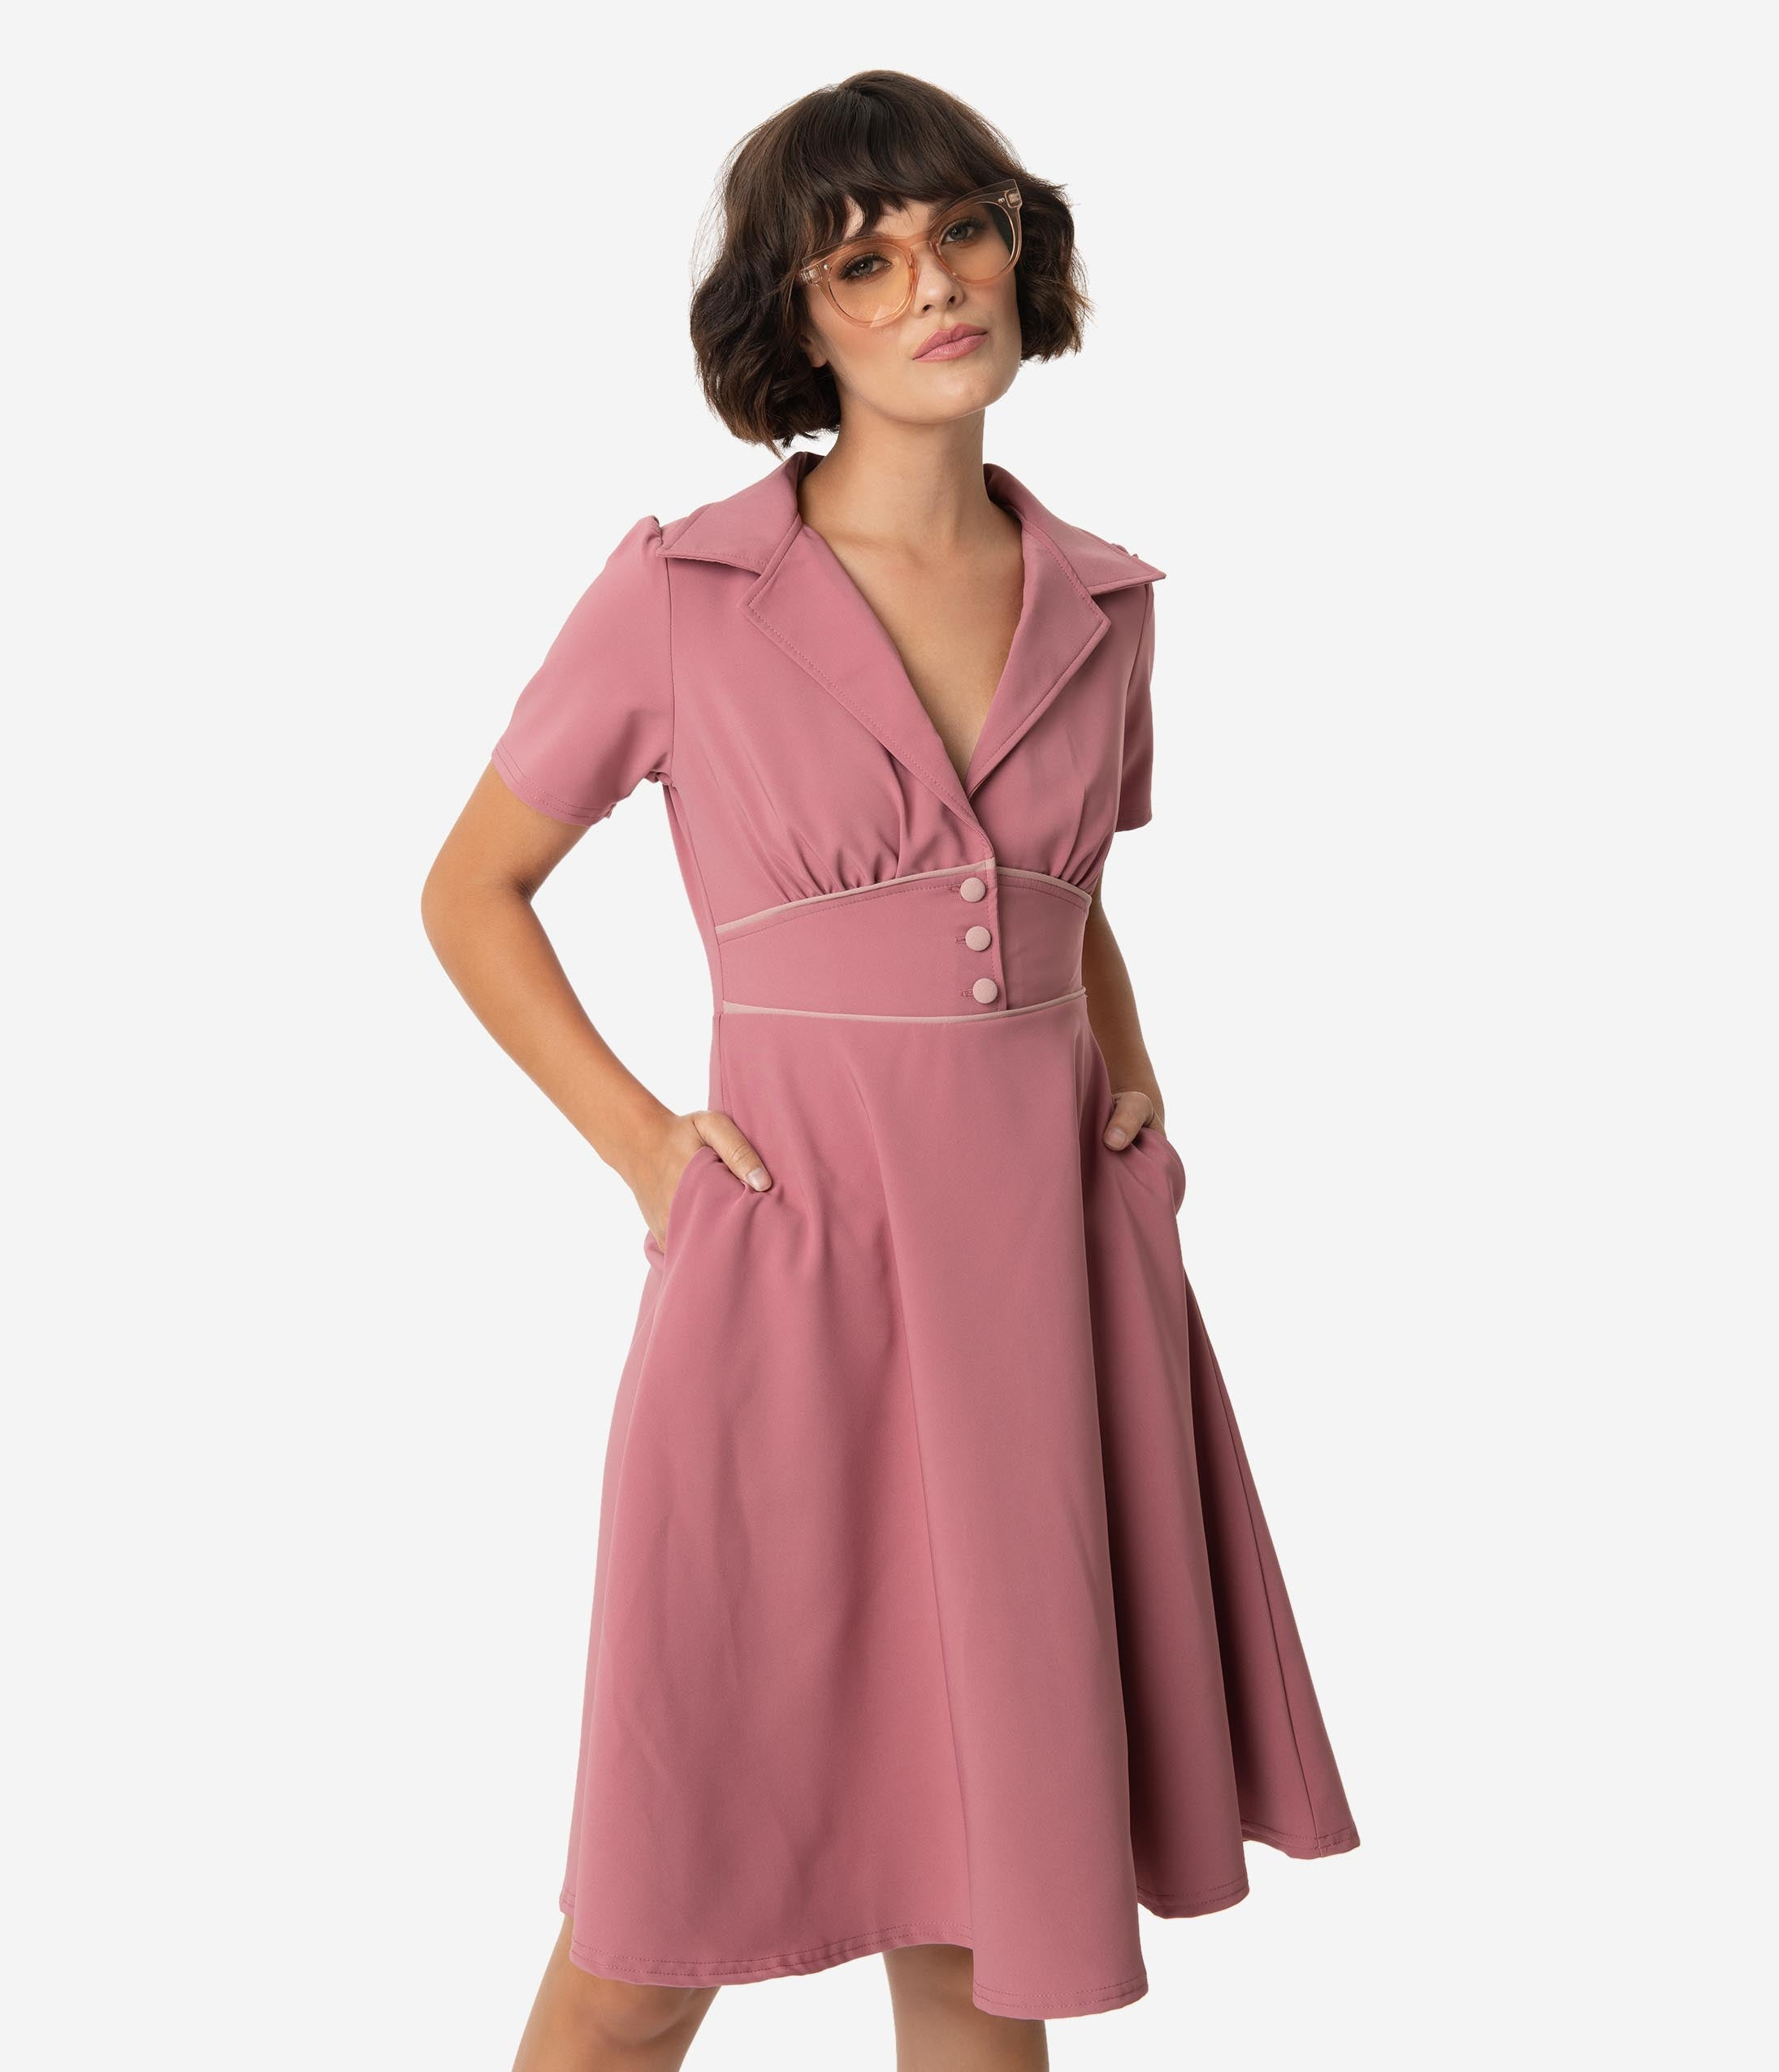 1940s Clothing Steady 1940S Style Mulberry Pink Katherine Swing Dress $74.00 AT vintagedancer.com